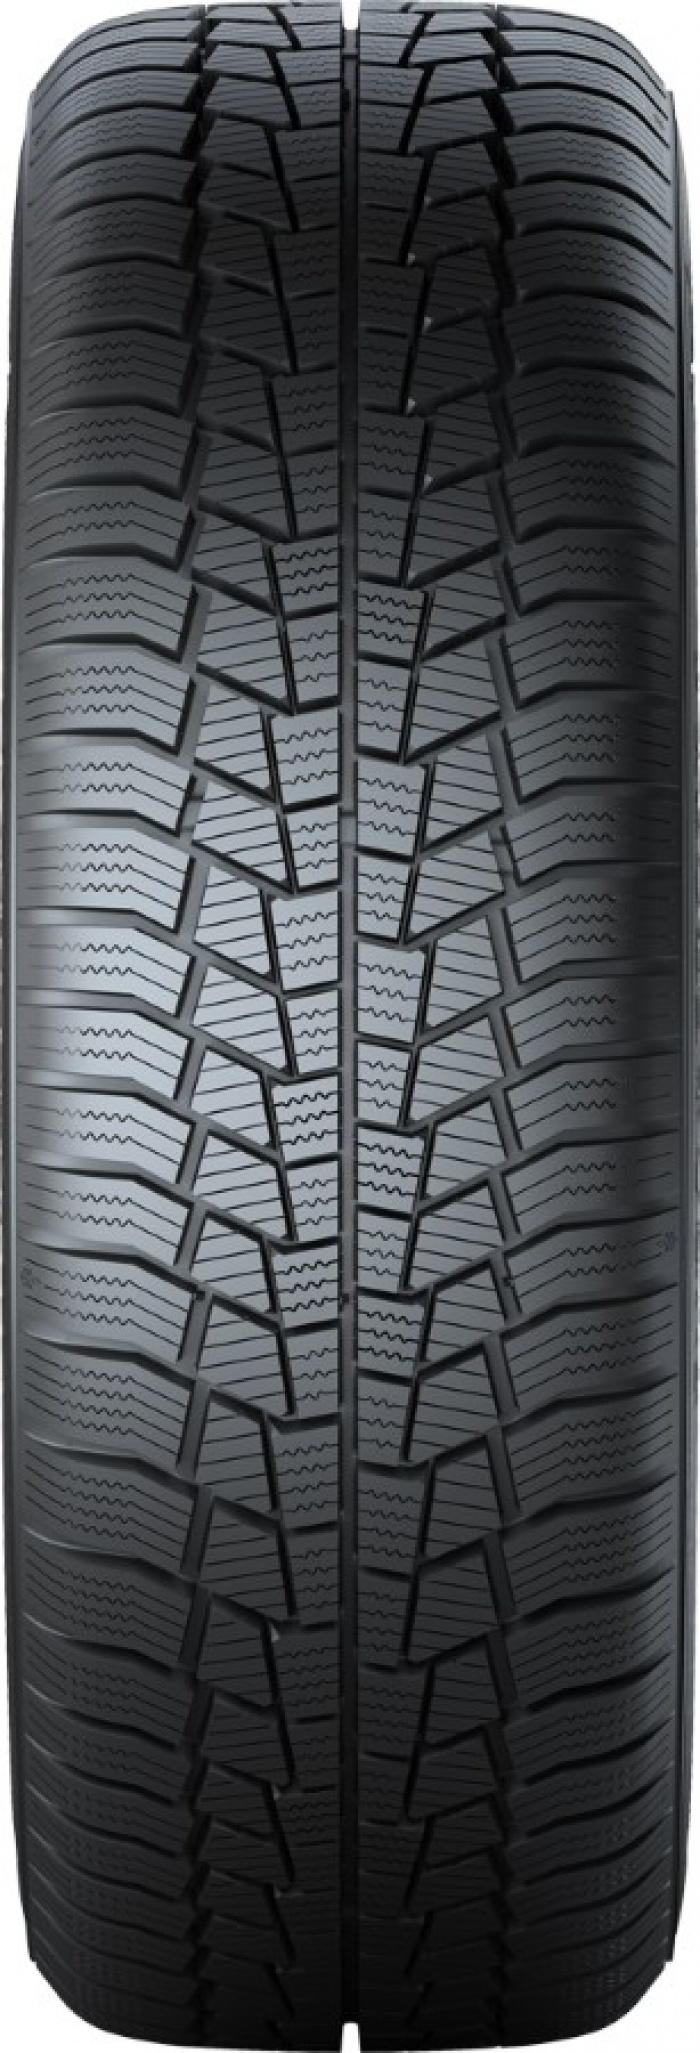 Gislaved Euro Frost 6 185/60 R15 88T  не шип